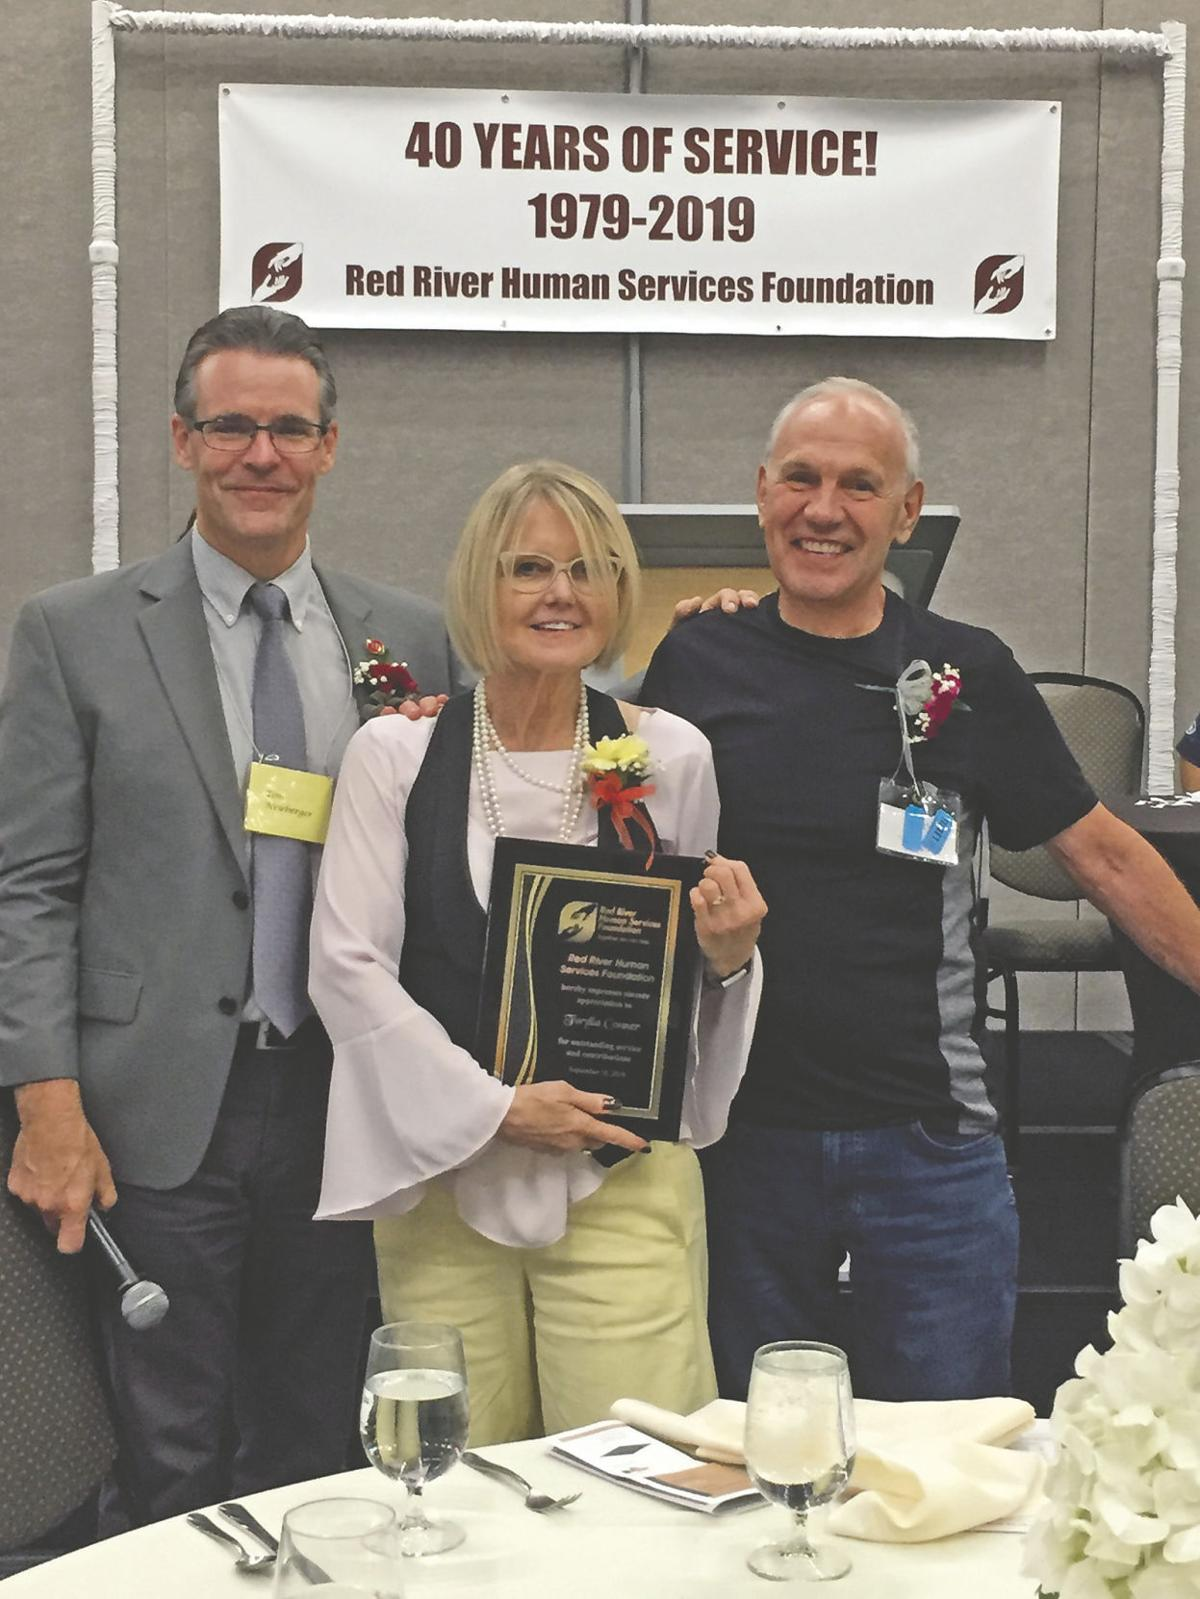 Red River Human Services celebrates 40 years